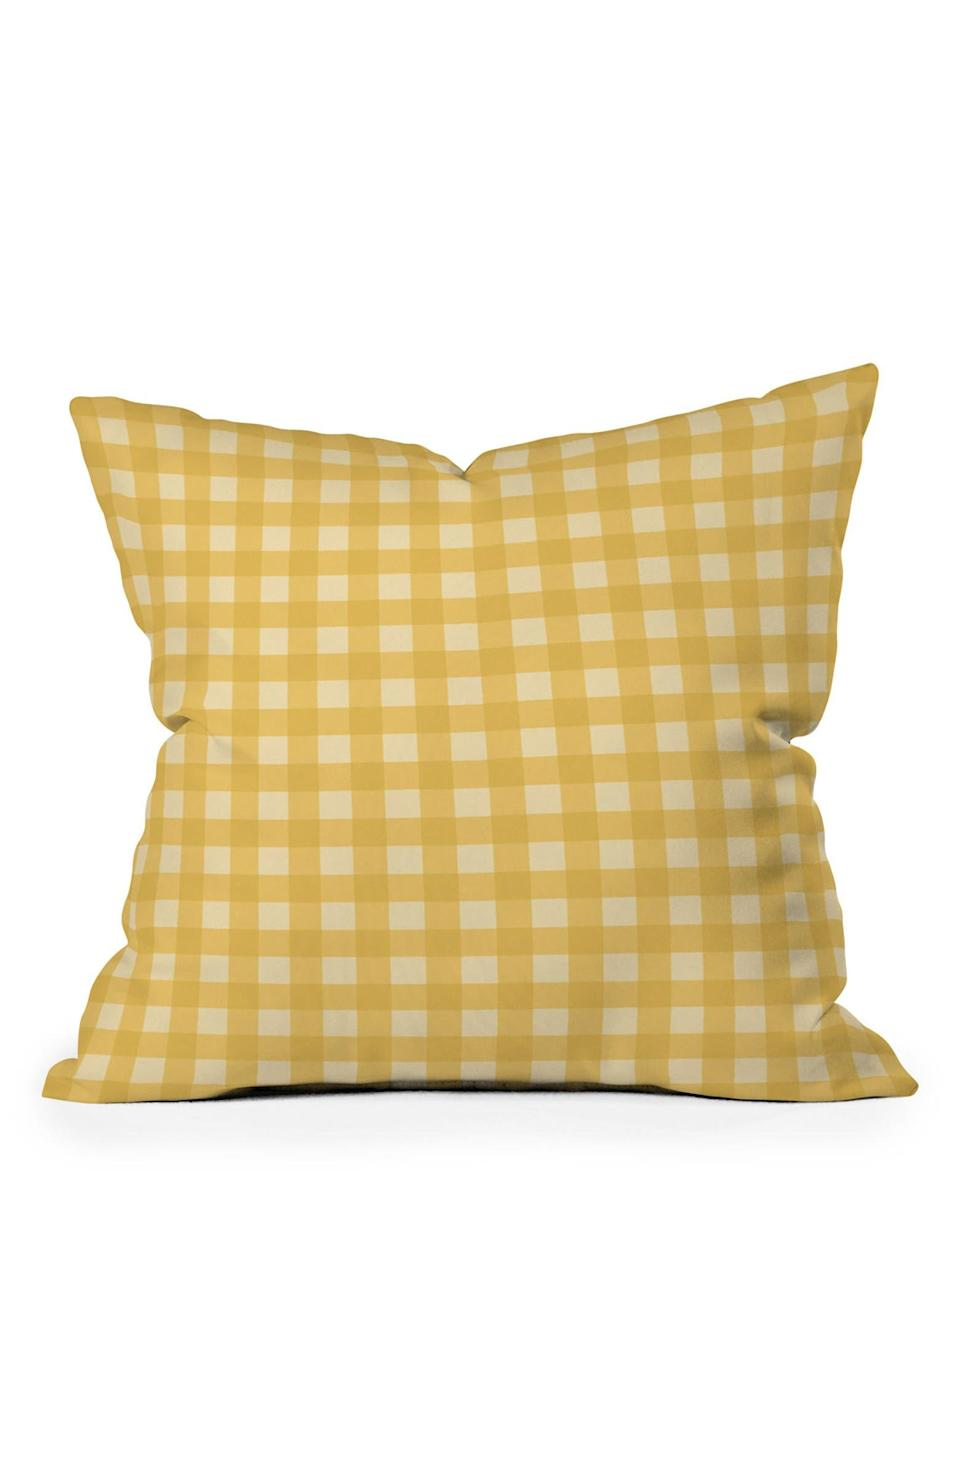 """A cottagecore confection rendered in classic gingham will lend countryside vibes to any couch or bed.<br><br><strong>DENY Designs</strong> Colour Poems Gingham Sunshine Square Throw Pillow, $, available at <a href=""""https://go.skimresources.com/?id=30283X879131&url=https%3A%2F%2Fwww.nordstromrack.com%2Fs%2Fdeny-designs-colour-poems-gingham-sunshine-square-throw-pillow%2F6021721"""" rel=""""nofollow noopener"""" target=""""_blank"""" data-ylk=""""slk:Nordstrom Rack"""" class=""""link rapid-noclick-resp"""">Nordstrom Rack</a>"""